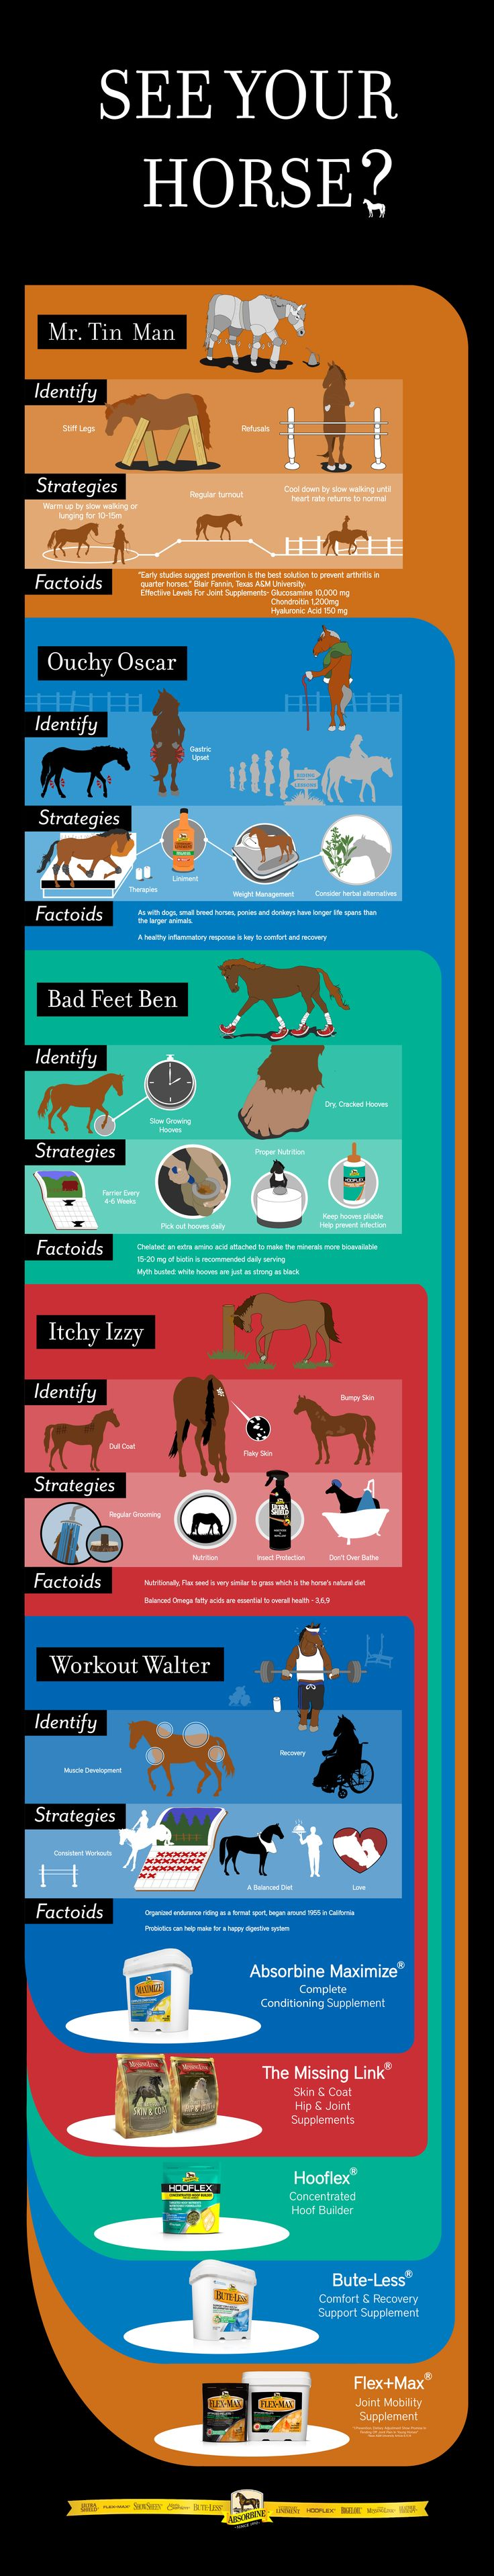 THE BEST SUPPLEMENT TO ENHANCE PERFORMANCE! Do you see your horse? Use our Supplement Selector Infographic to help find the right Absorbine equine supplements!